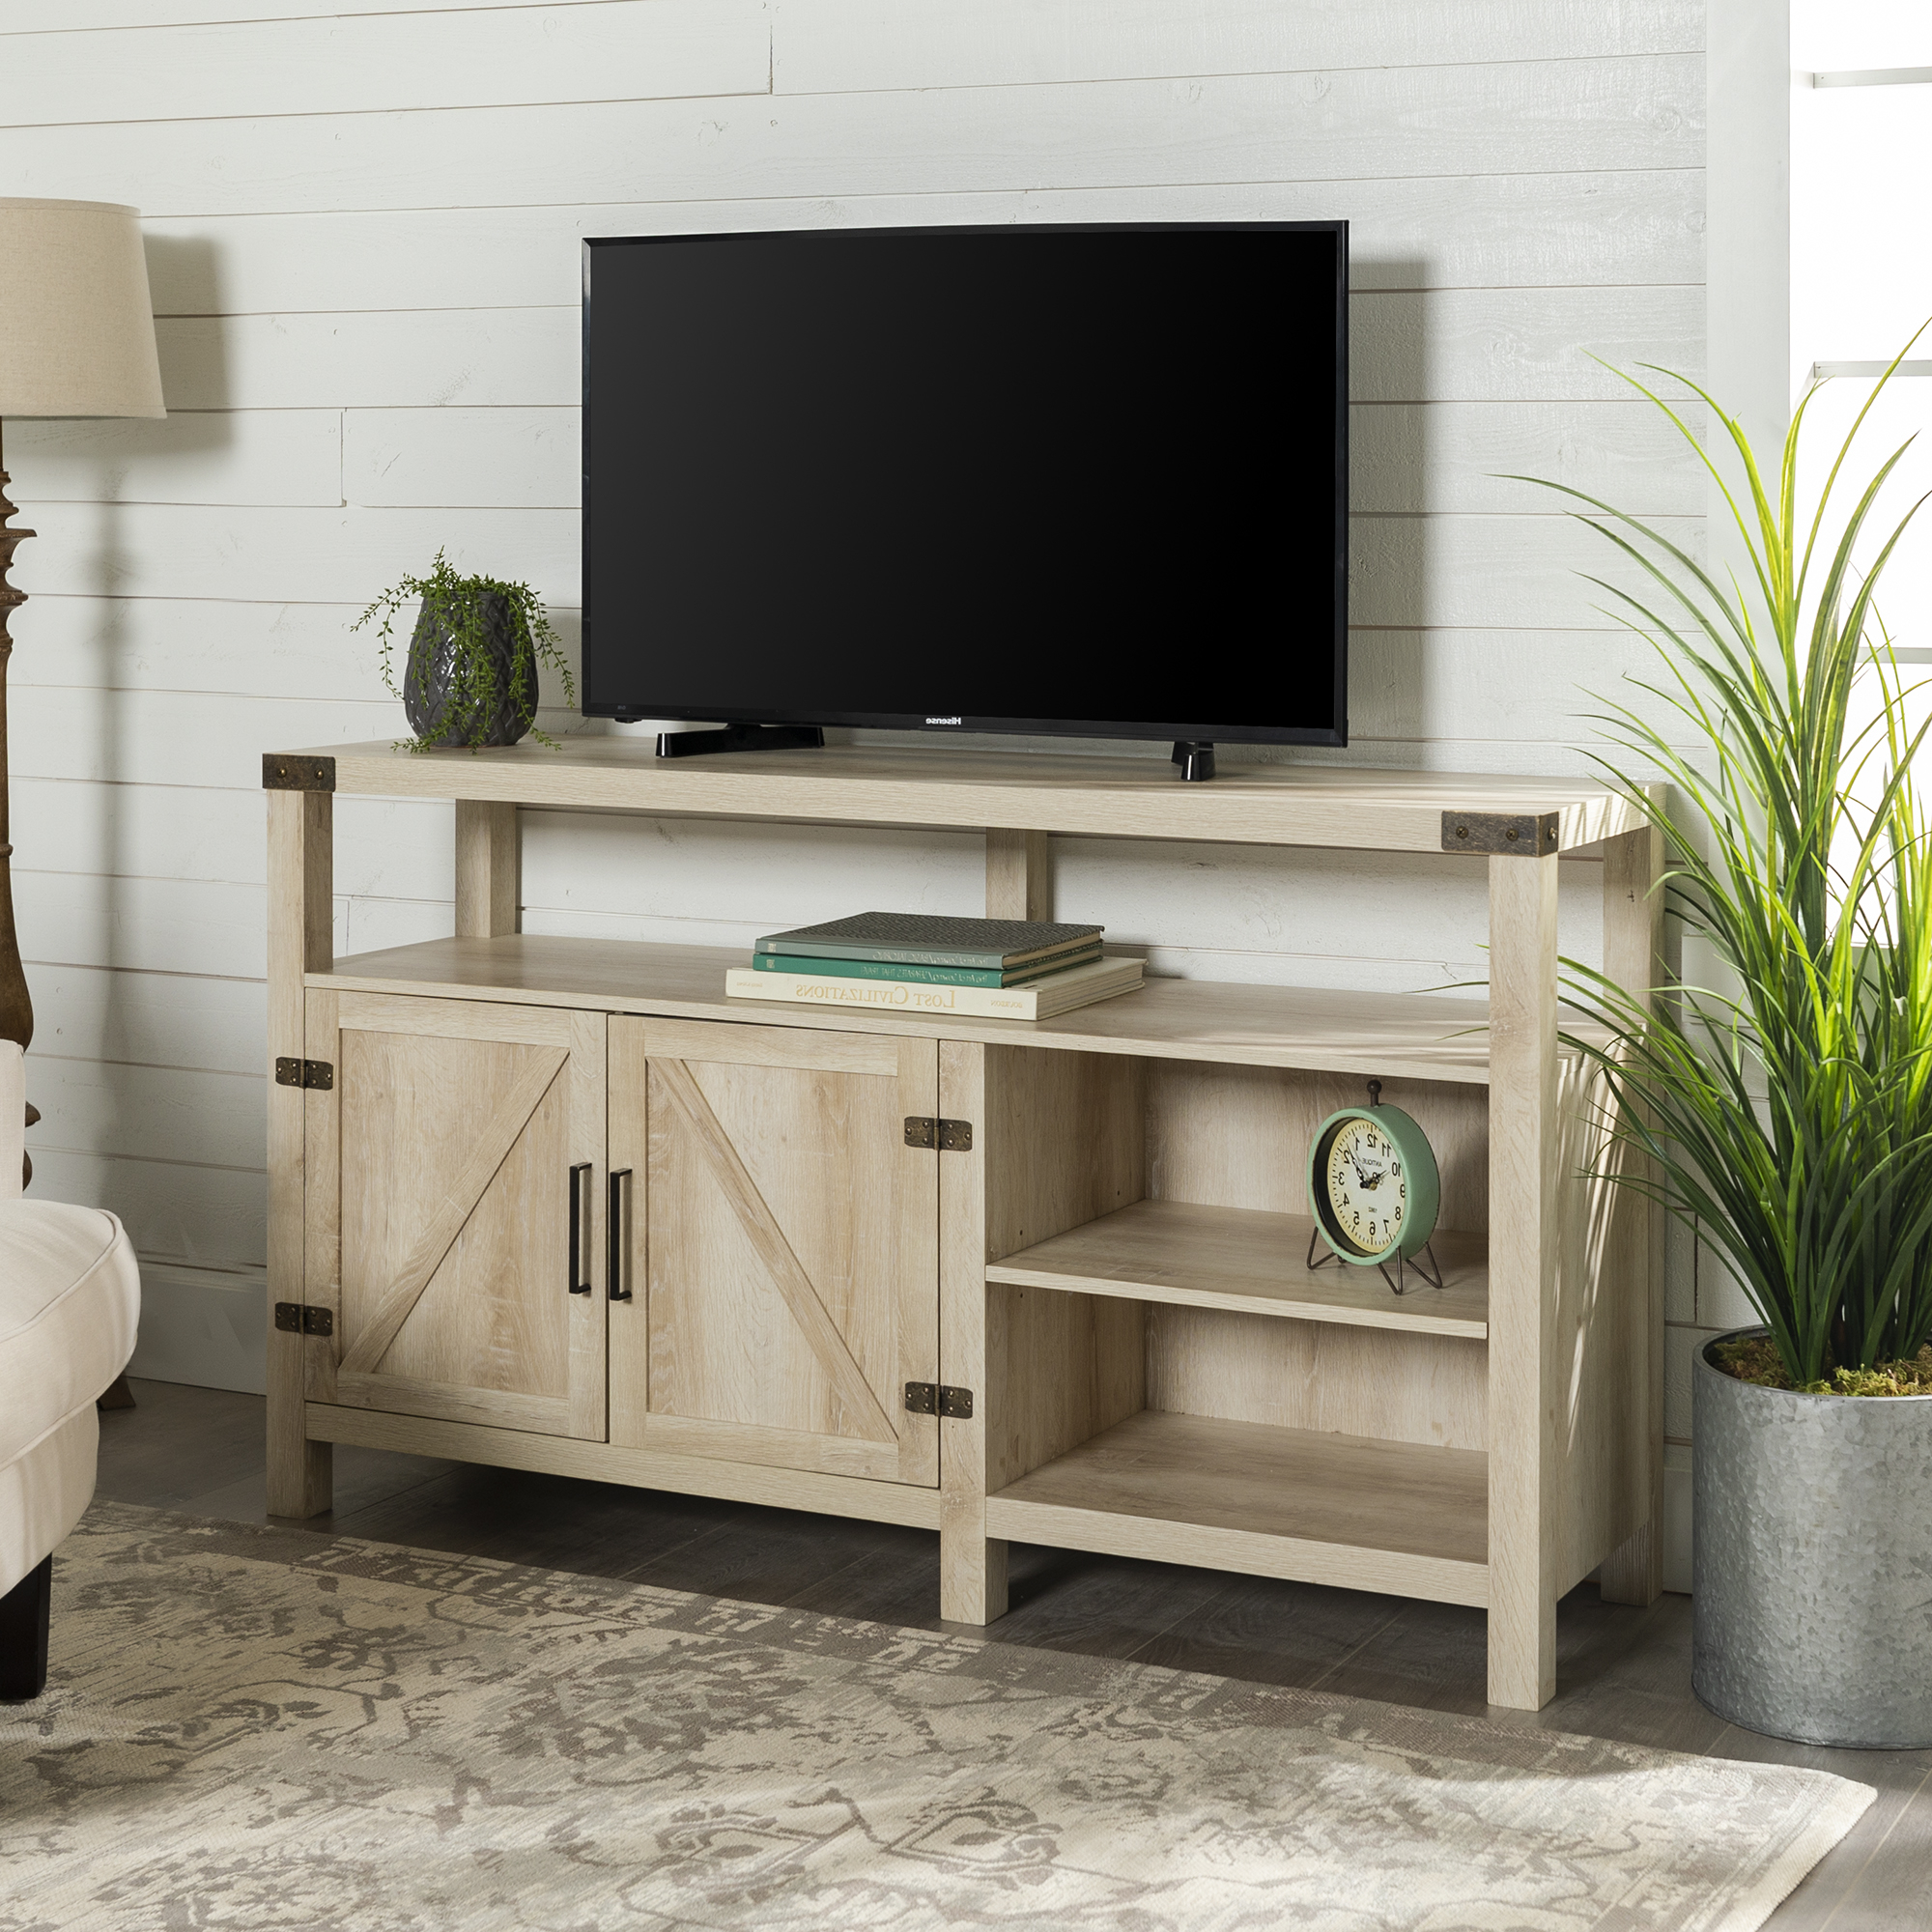 """Woven Paths Modern Farmhouse Oak Tv Stand For Tvs Up To 65 Inside Well Known Totally Tv Stands For Tvs Up To 65"""" (View 7 of 25)"""